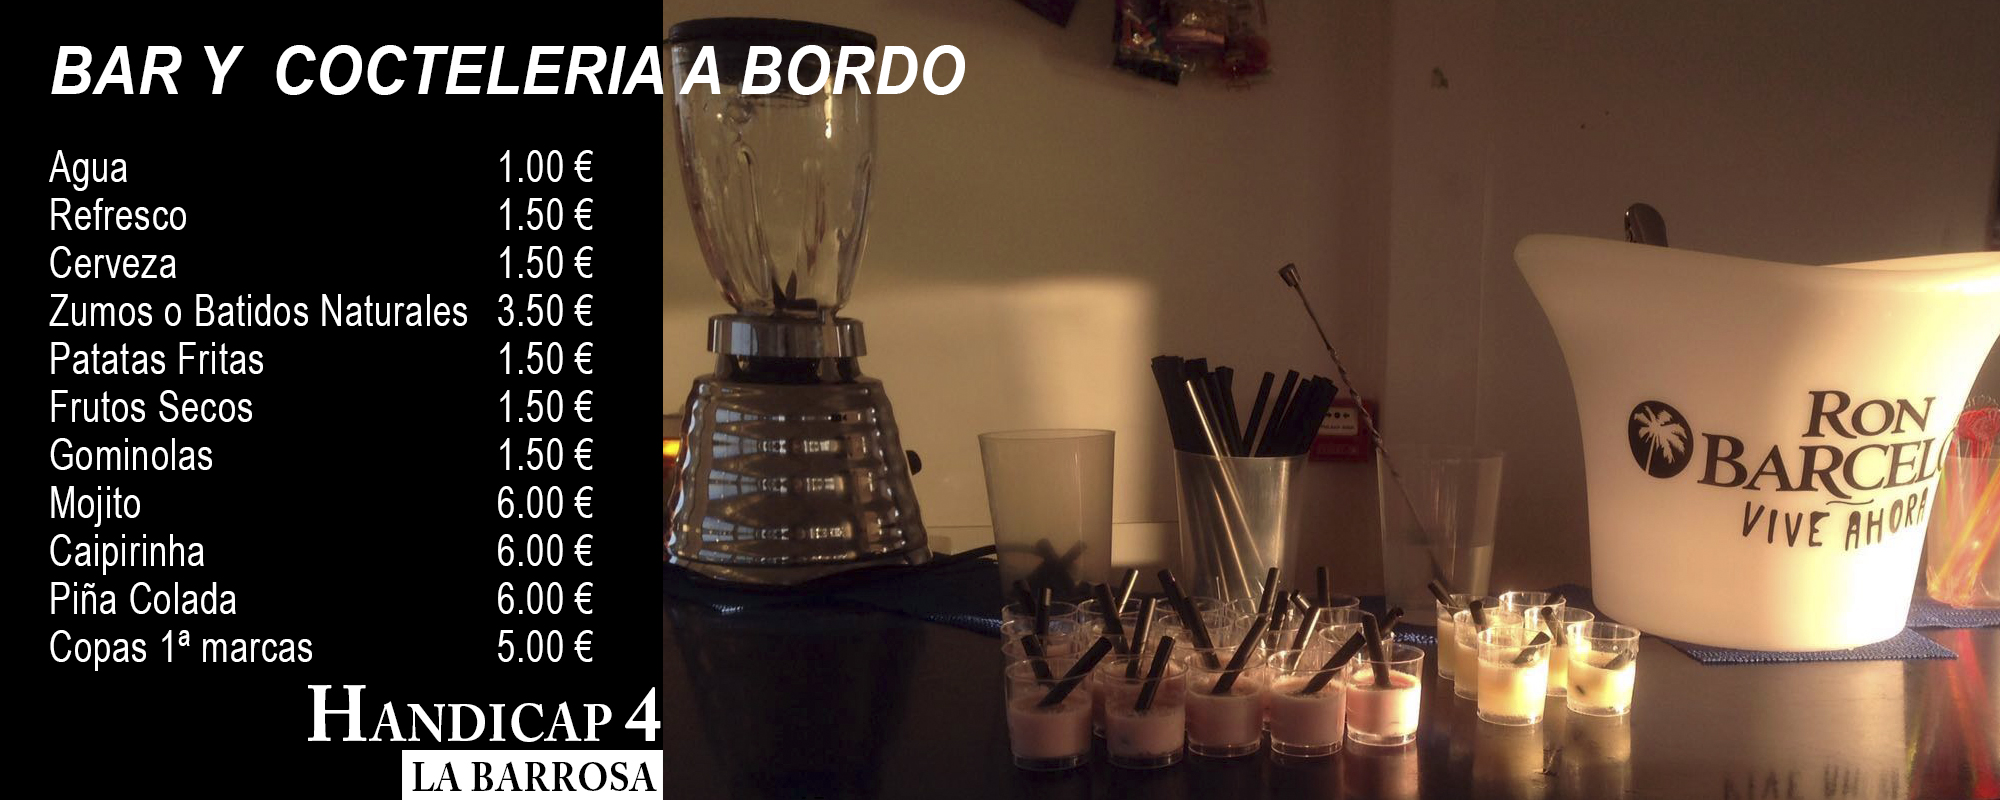 Bar y cocteleria a bordo